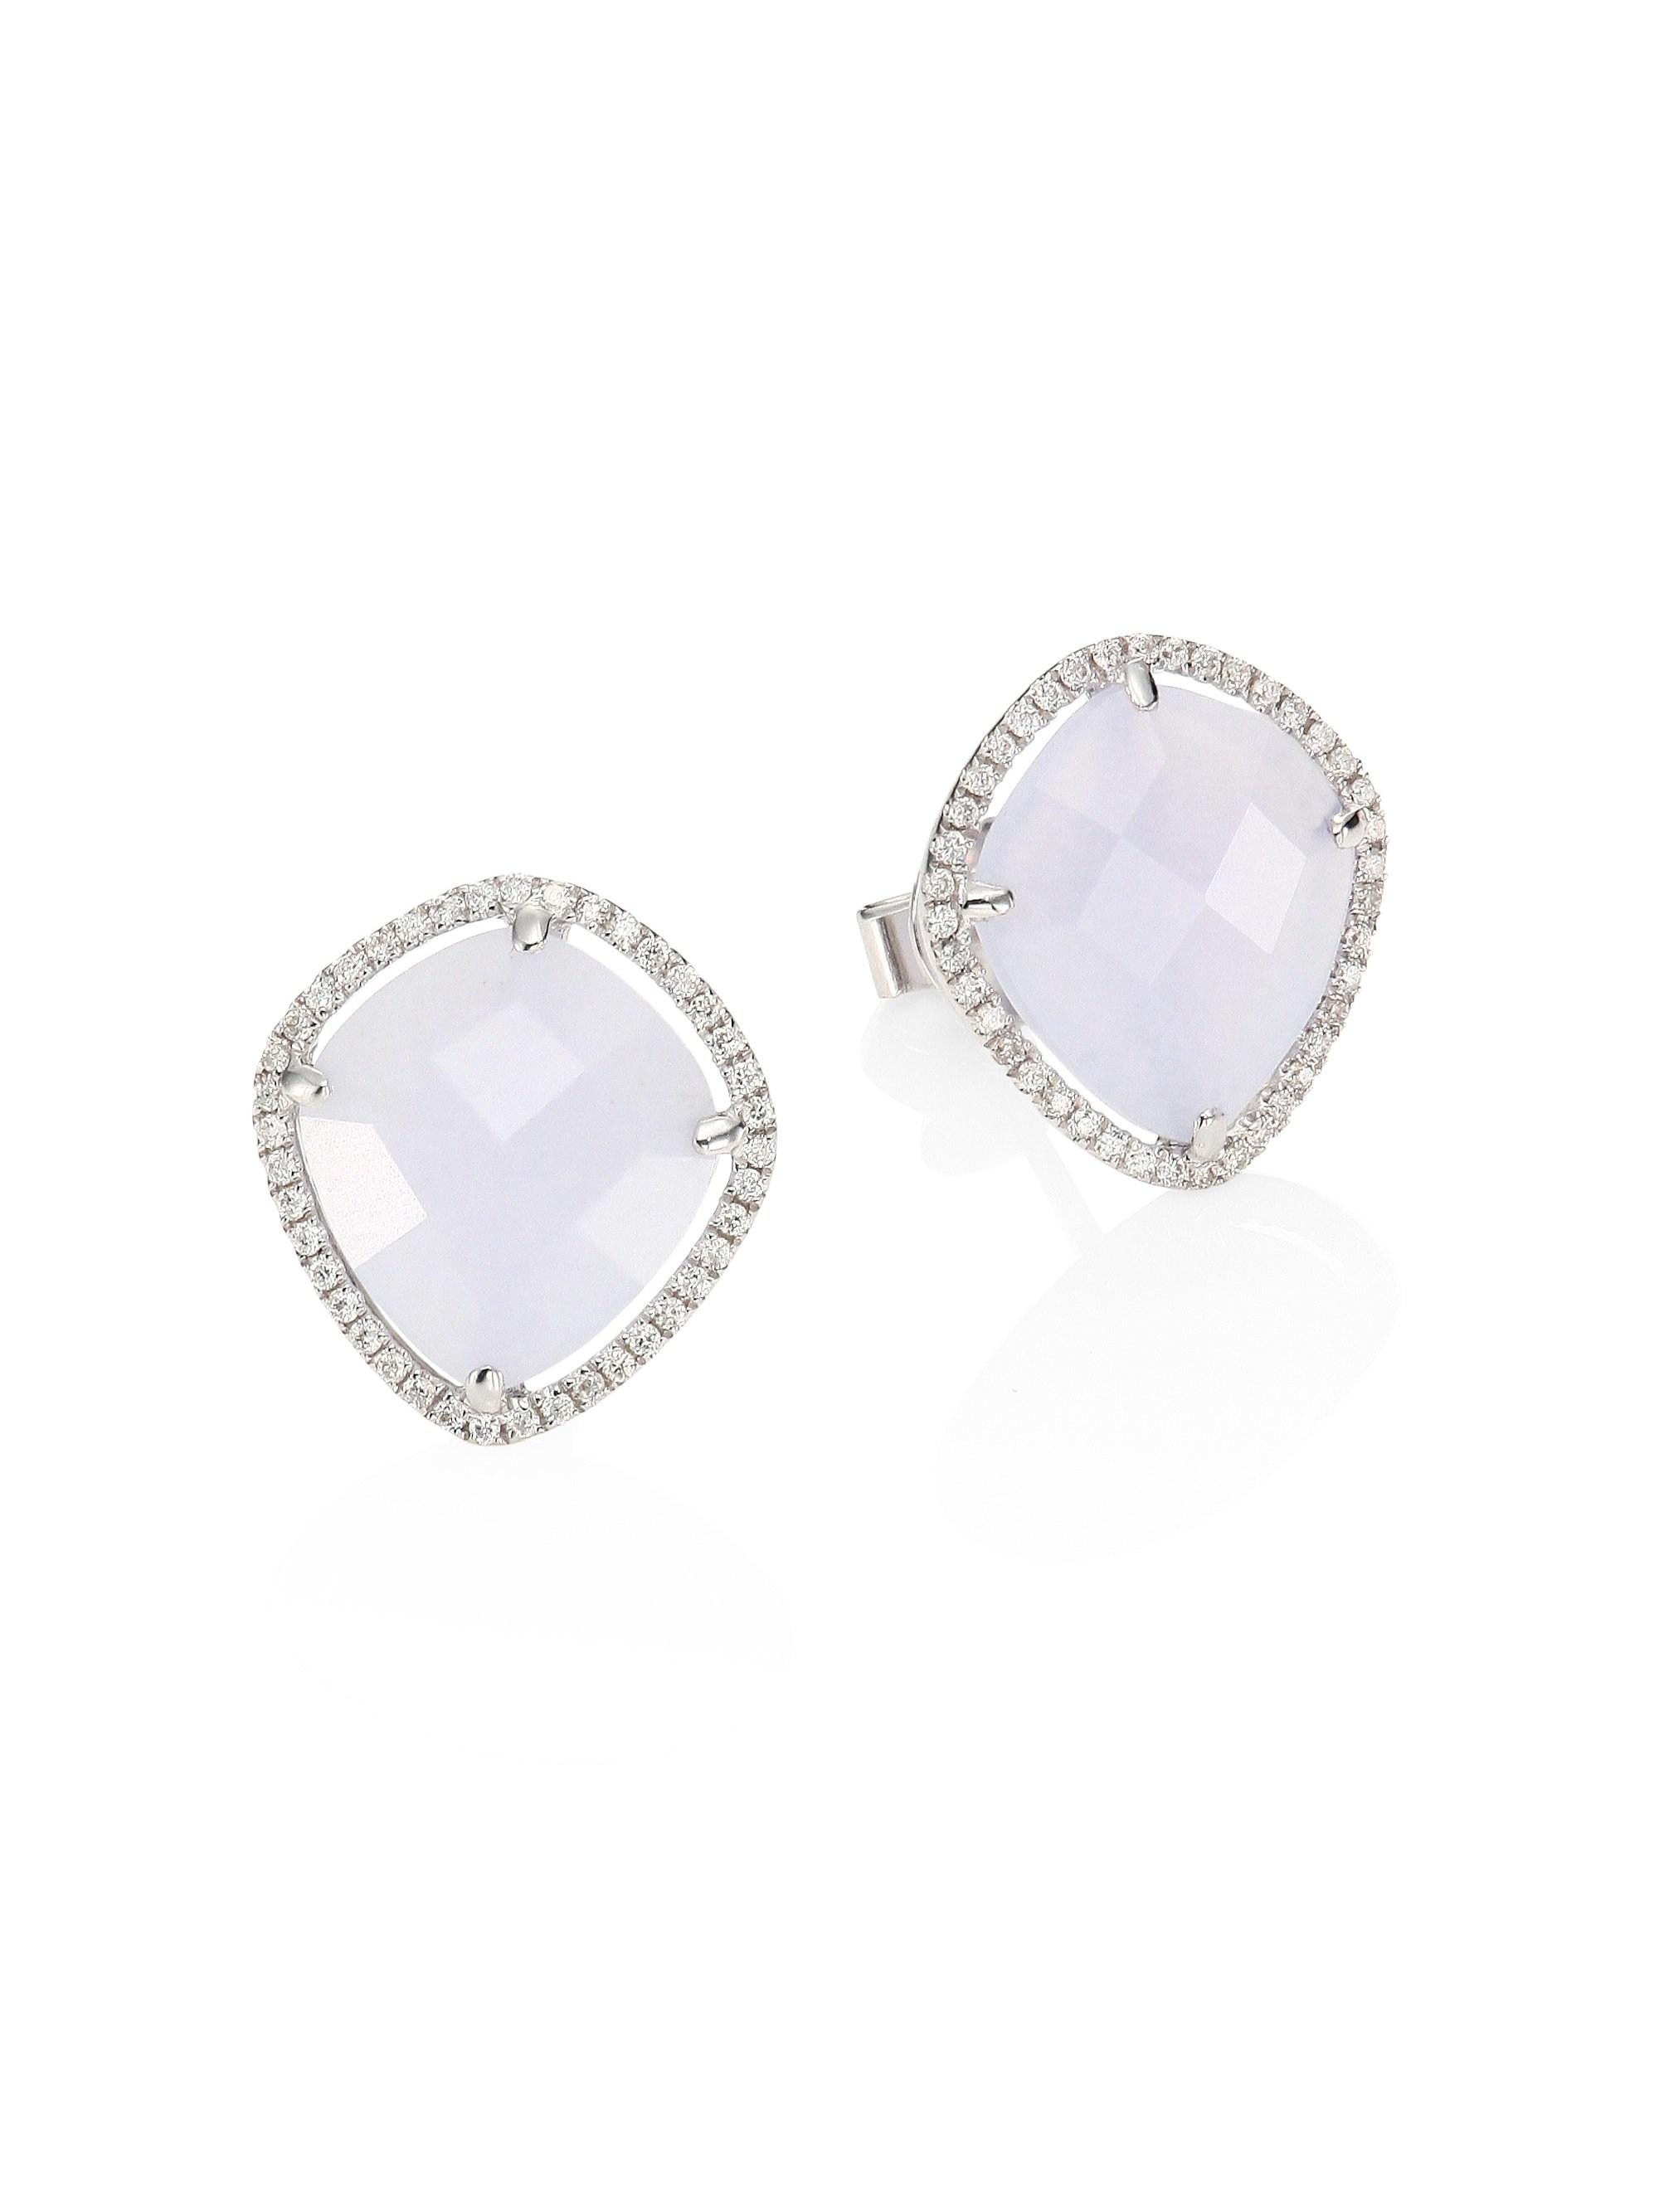 798e293ca Meira T. Metallic Women's Diamond, Blue Opal & 14k White Gold Stud Earrings  ...